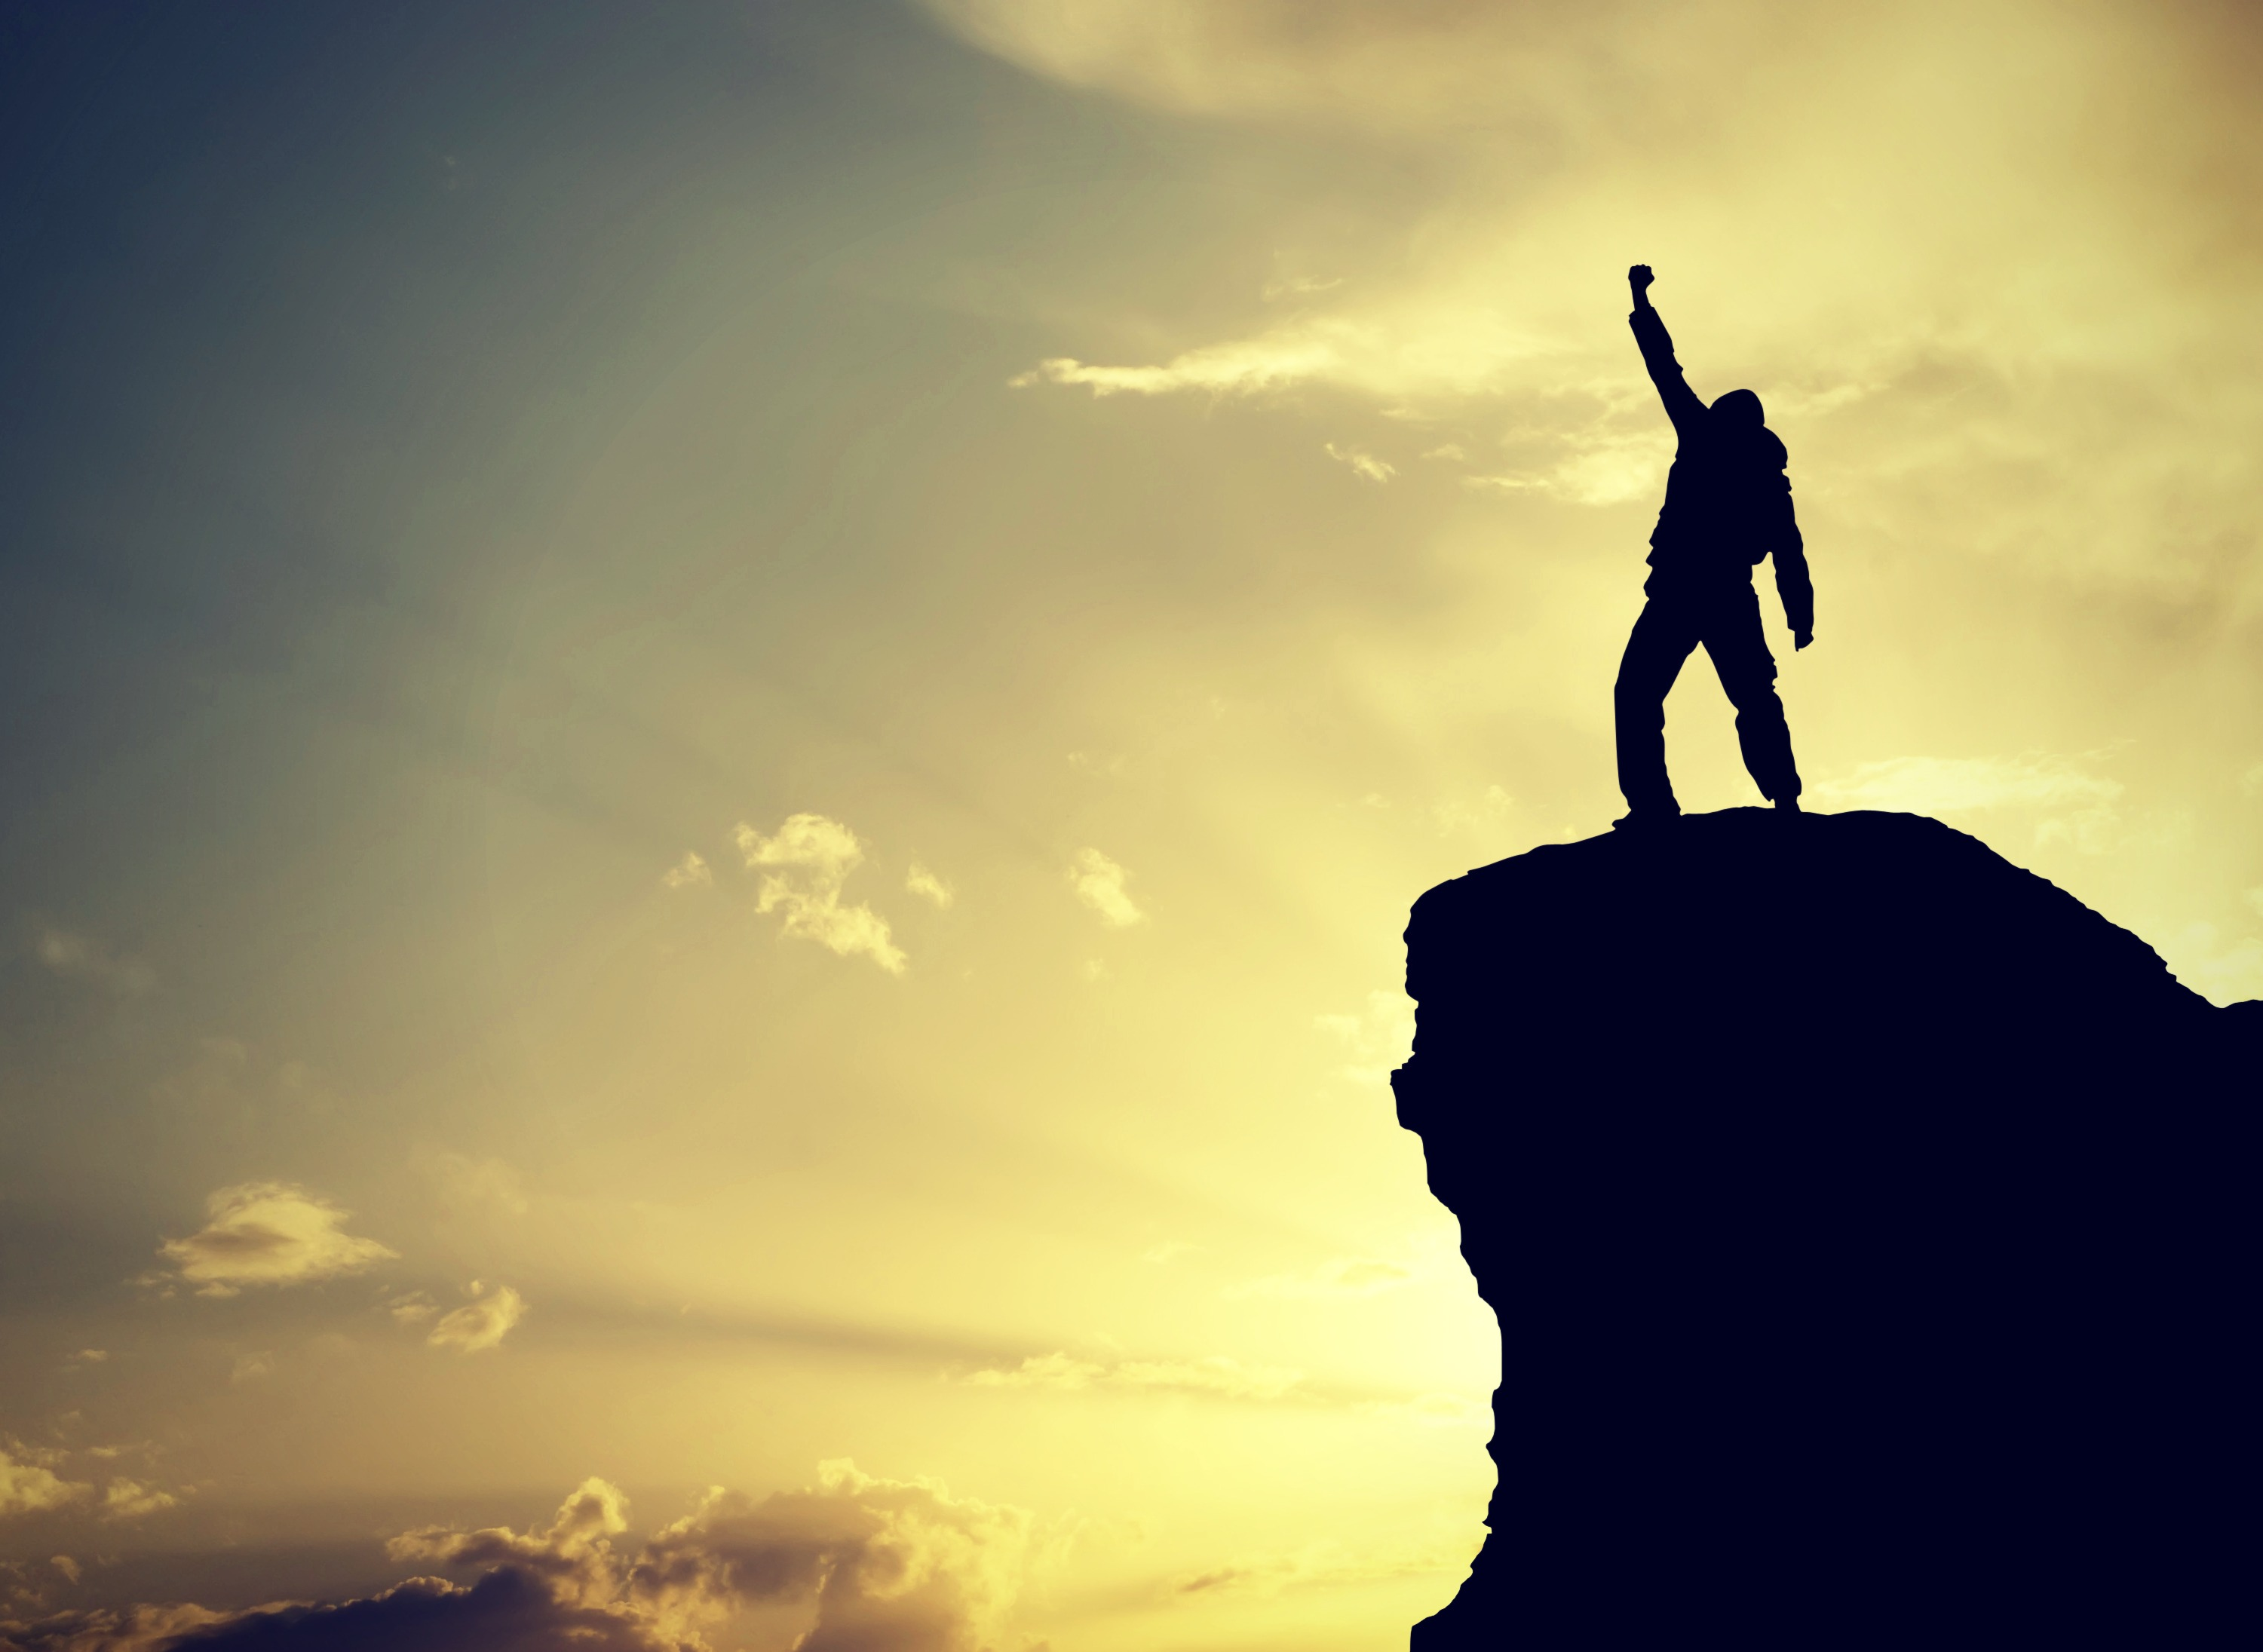 Three Practices to Inspire Your Team to Greater Heights